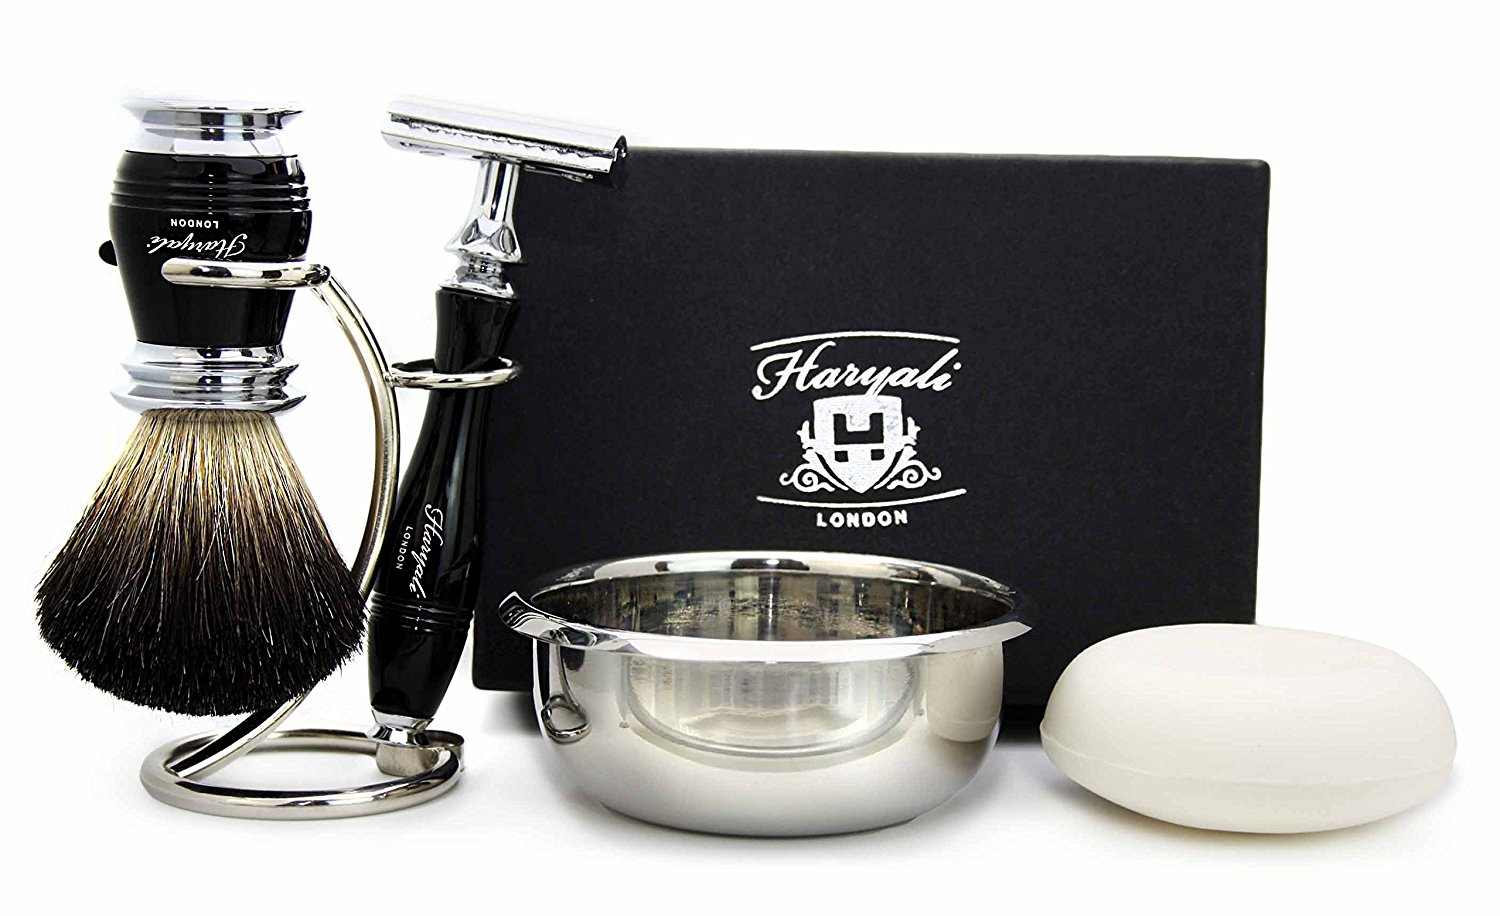 5 Pieces Shaving Set in Black( Black Badger Hair Brush, 3 Different Type of Razor to Choose, Brush & Razor Holder & Shaving Soap)Blades not Included. Perfect As a Gift (De Safety Razor)